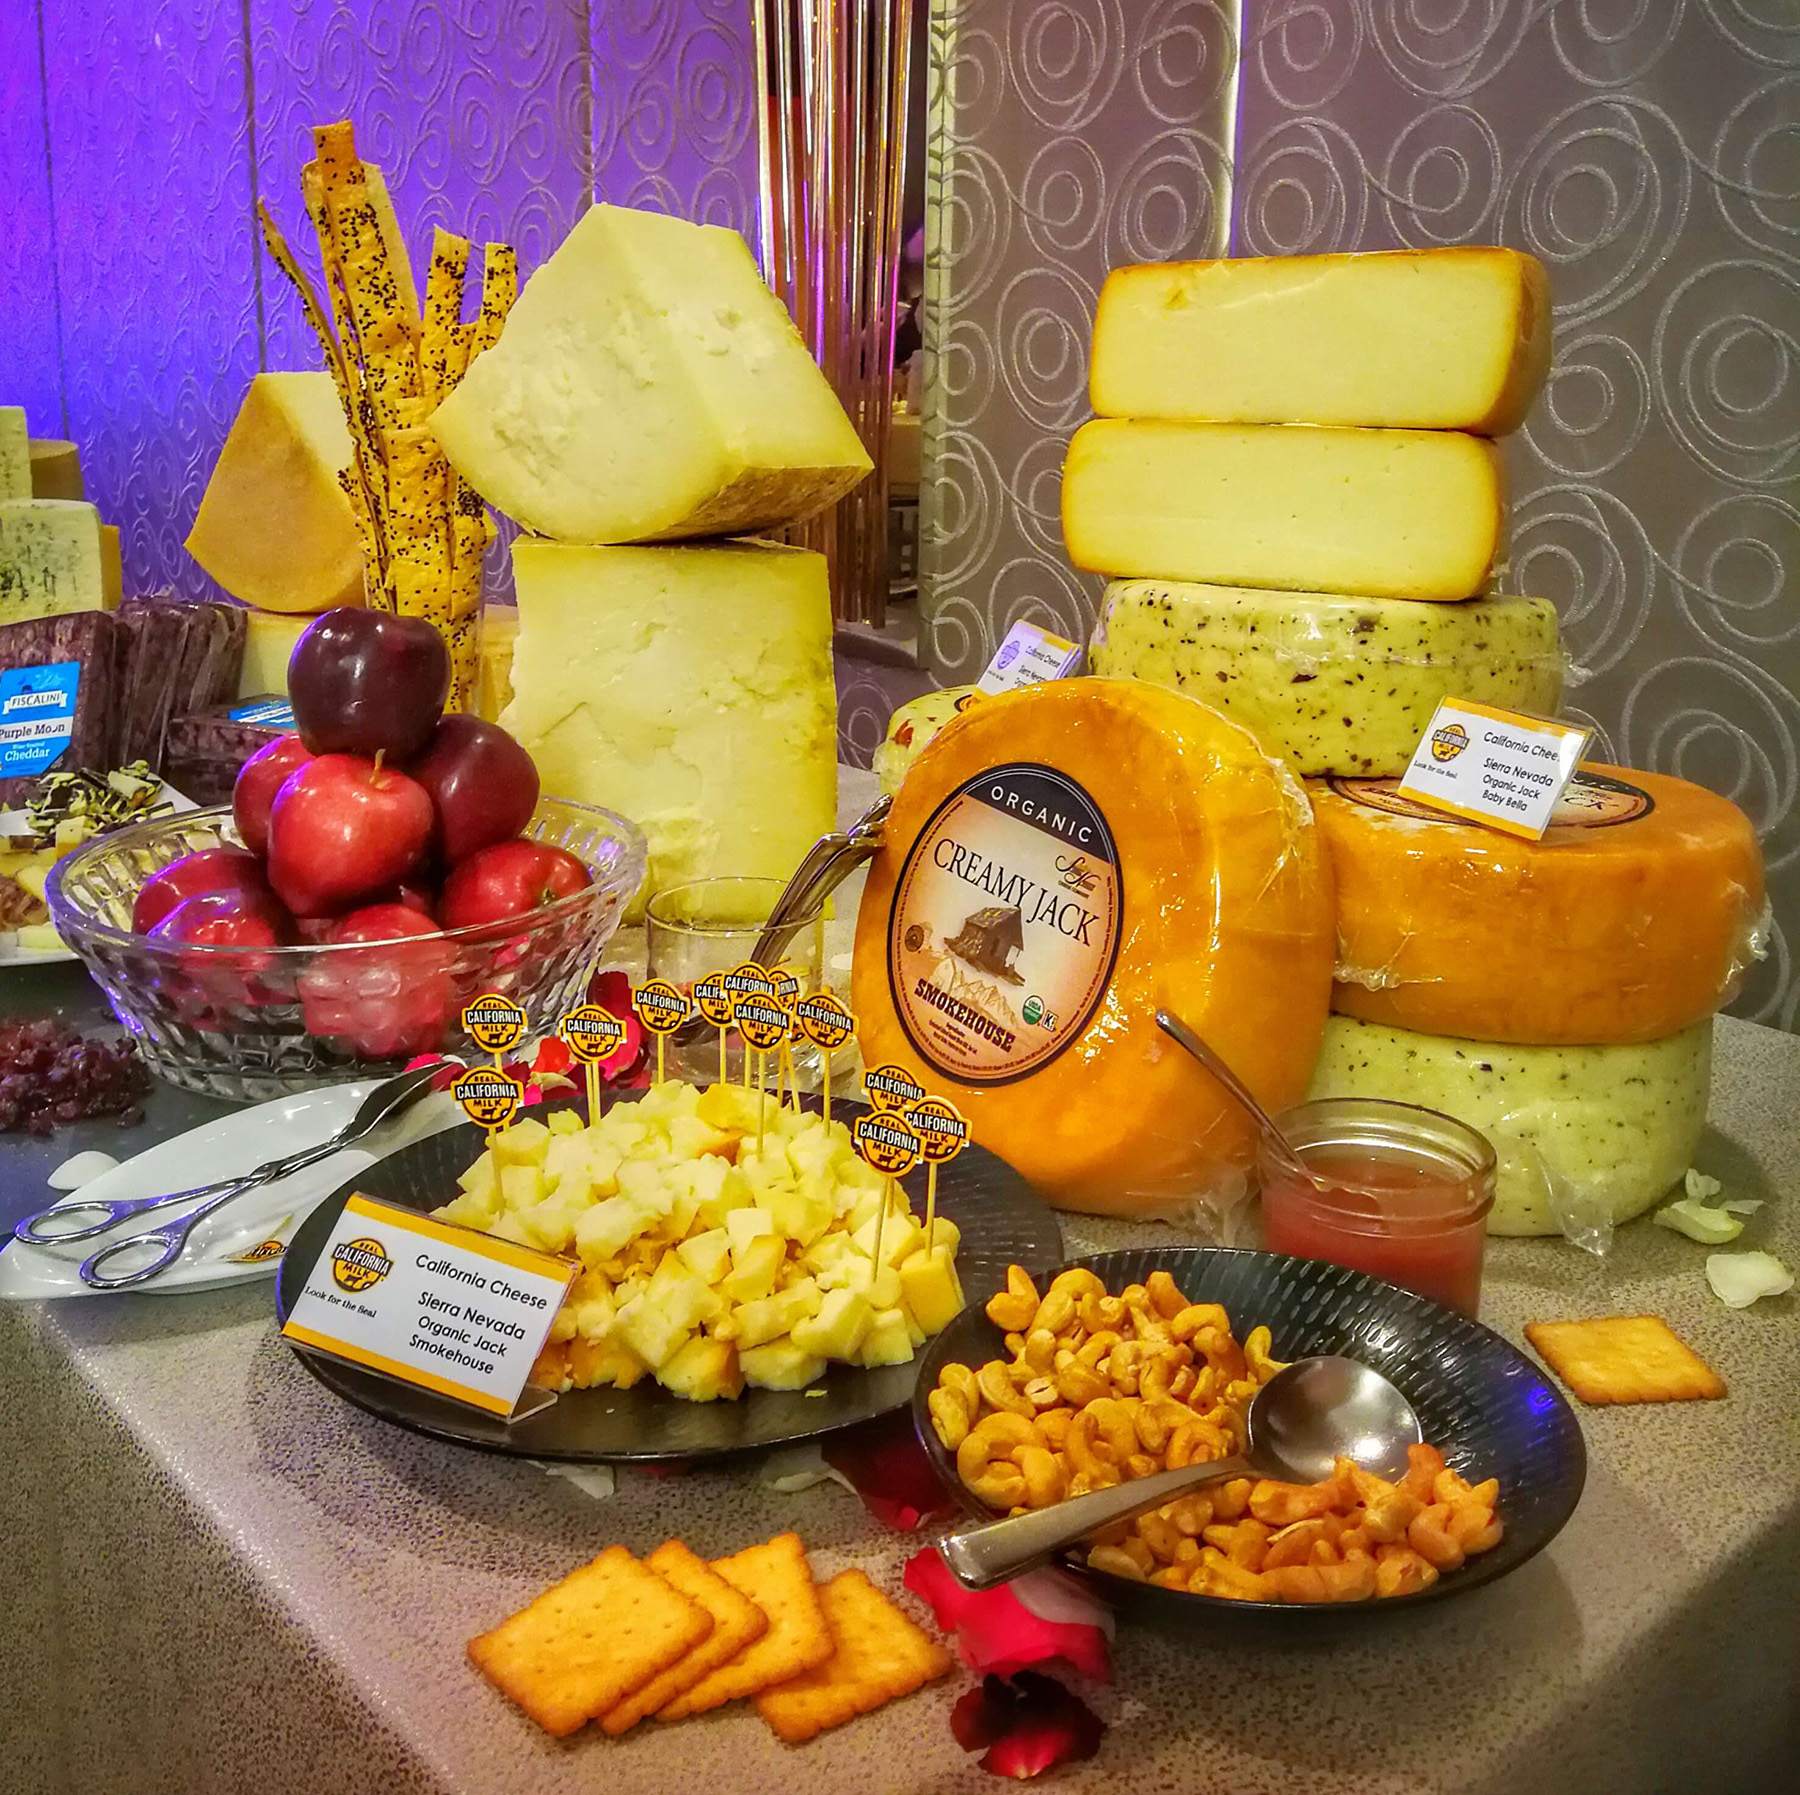 A good selection of California cheeses available for tasting in the recent CMAB event